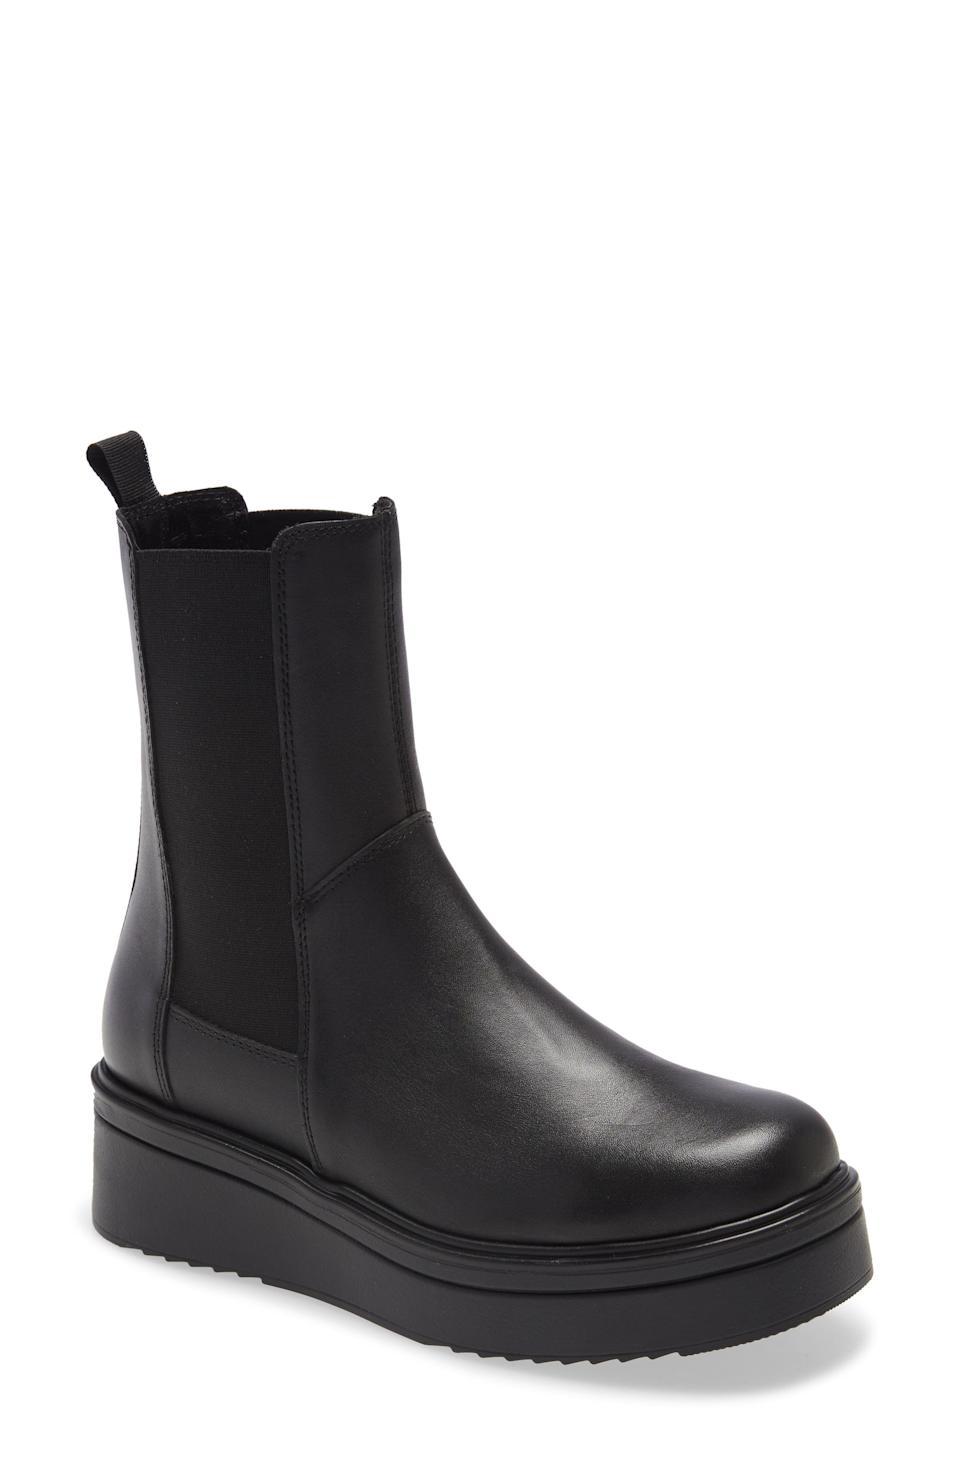 """<p><strong>Steve Madden</strong></p><p>nordstrom.com</p><p><strong>$90.30</strong></p><p><a href=""""https://go.redirectingat.com?id=74968X1596630&url=https%3A%2F%2Fwww.nordstrom.com%2Fs%2Fsteve-madden-clarisa-platform-chelsea-boot-women%2F6559067&sref=https%3A%2F%2Fwww.elle.com%2Ffashion%2Fshopping%2Fg37873182%2Fnordstrom-fall-clothing-sale%2F"""" rel=""""nofollow noopener"""" target=""""_blank"""" data-ylk=""""slk:Shop Now"""" class=""""link rapid-noclick-resp"""">Shop Now</a></p><p>Here lies a pair of boots that will go with everything.</p>"""